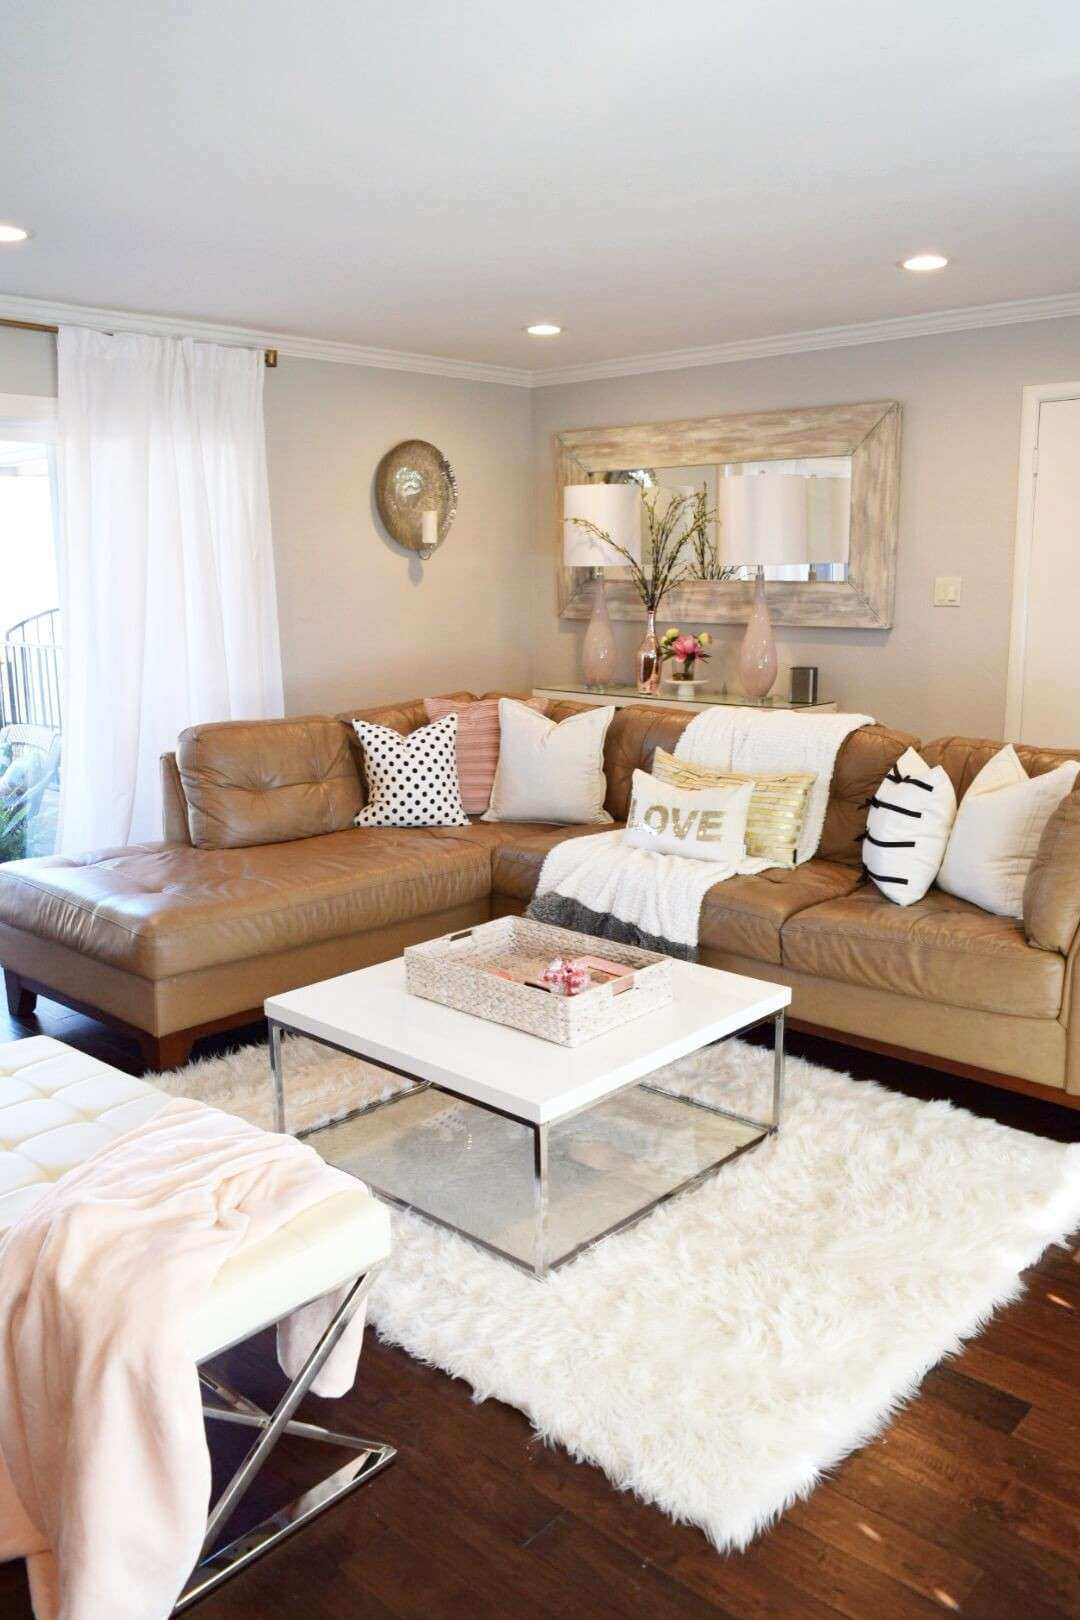 30 Creative Ideas to Decorate the Sofa Decor10 Blog